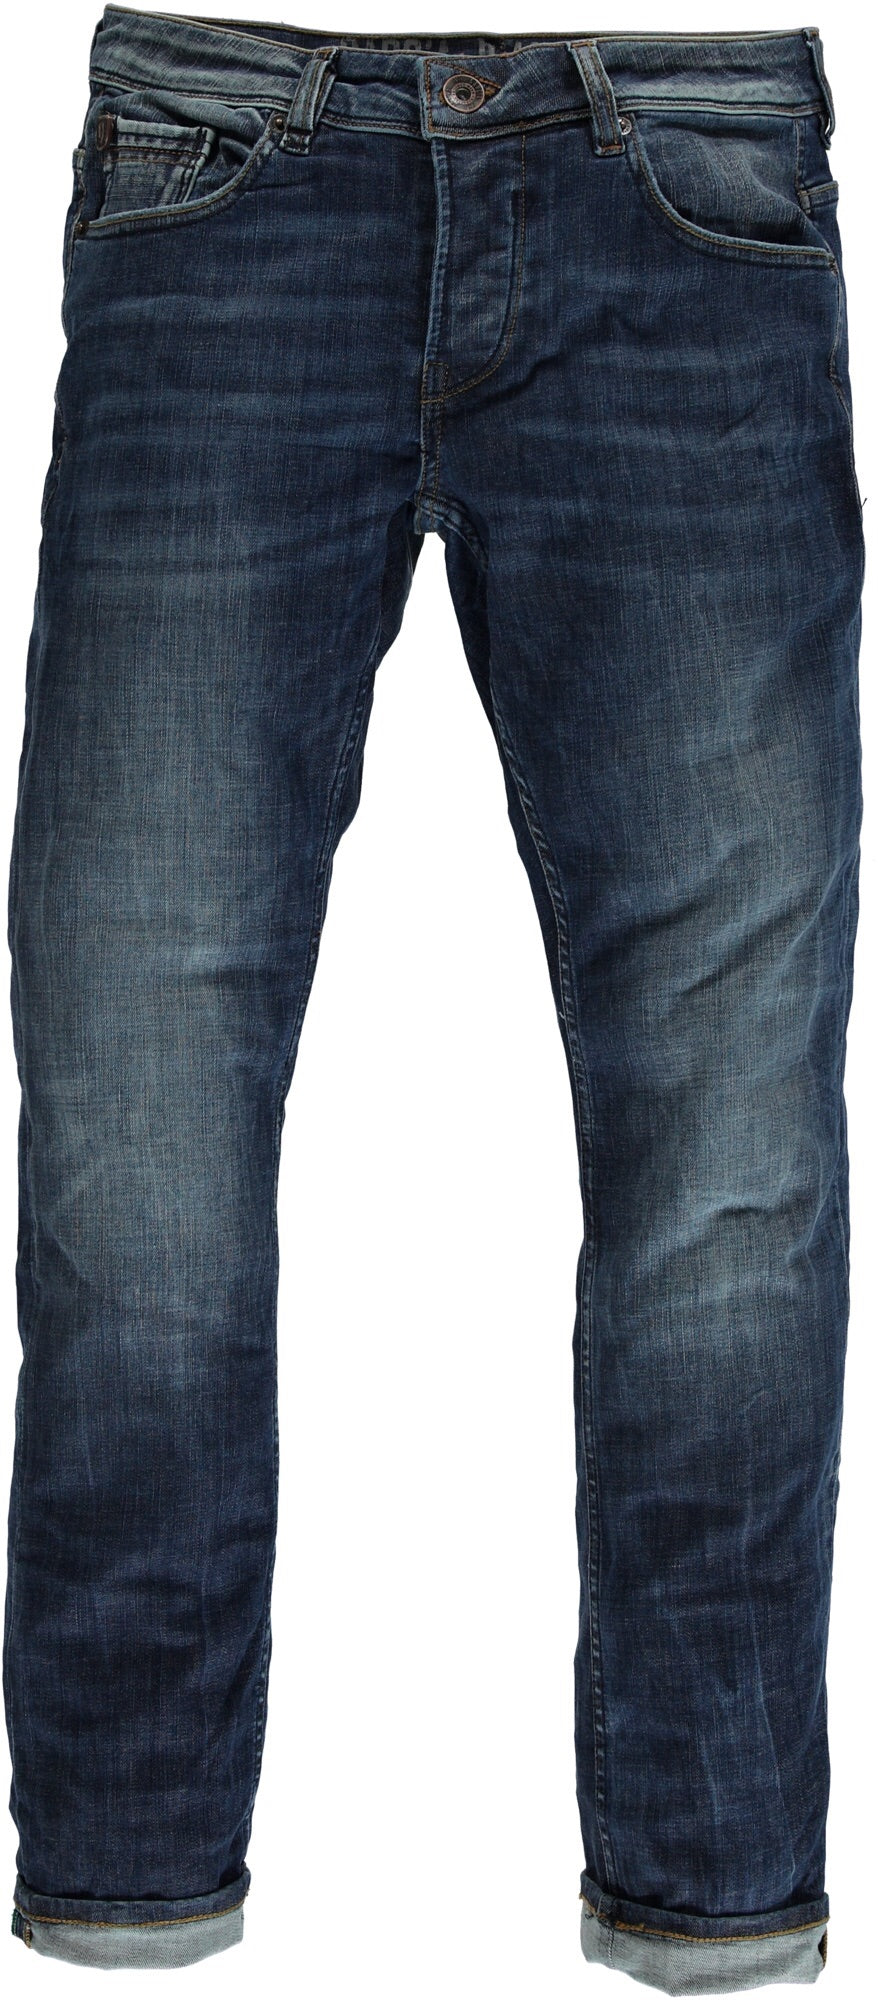 Garcia Men's Savio Dark Used Jeans